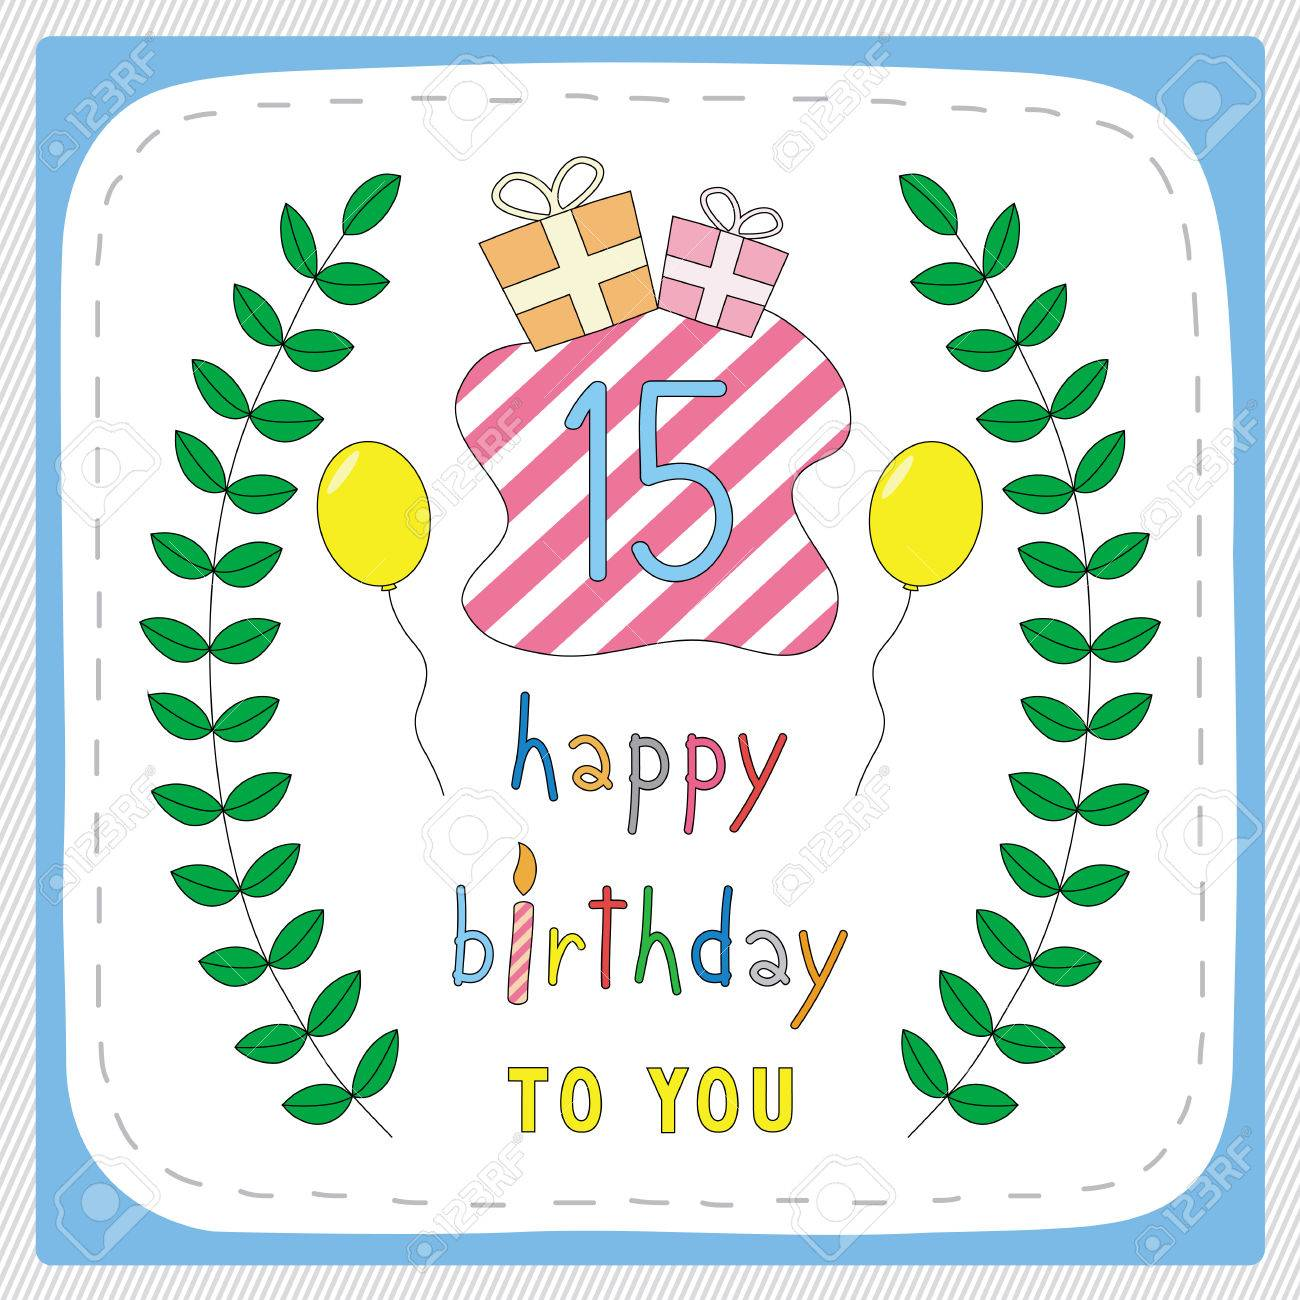 Happy Birthday Card With 15th Birthday And For 15 Years – 15th Birthday Cards